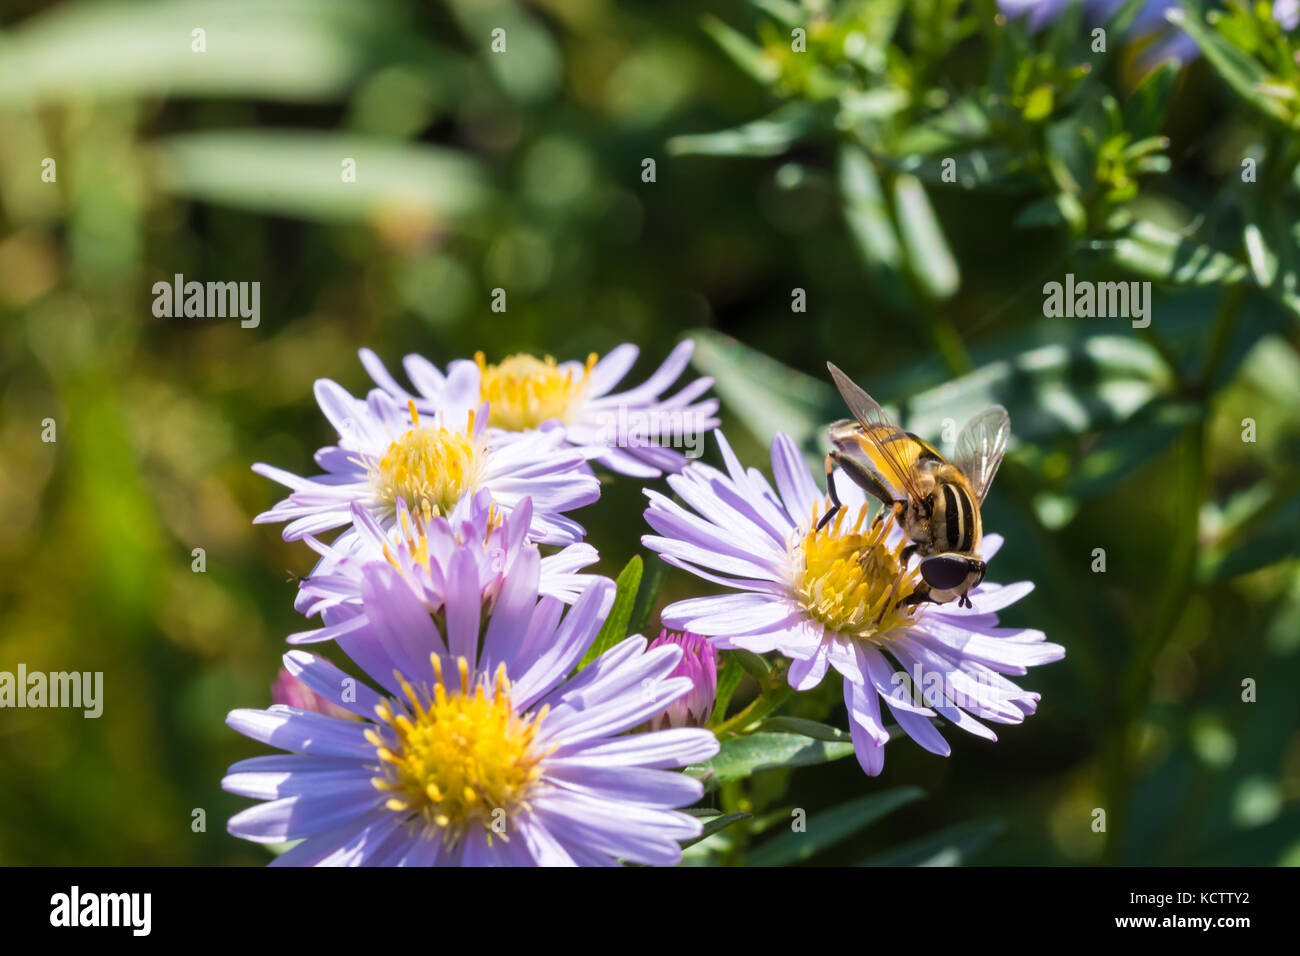 The honey bee sitting on a flower (Aster amellus) and feeding on nectar.  Close-up with selective focus. - Stock Image